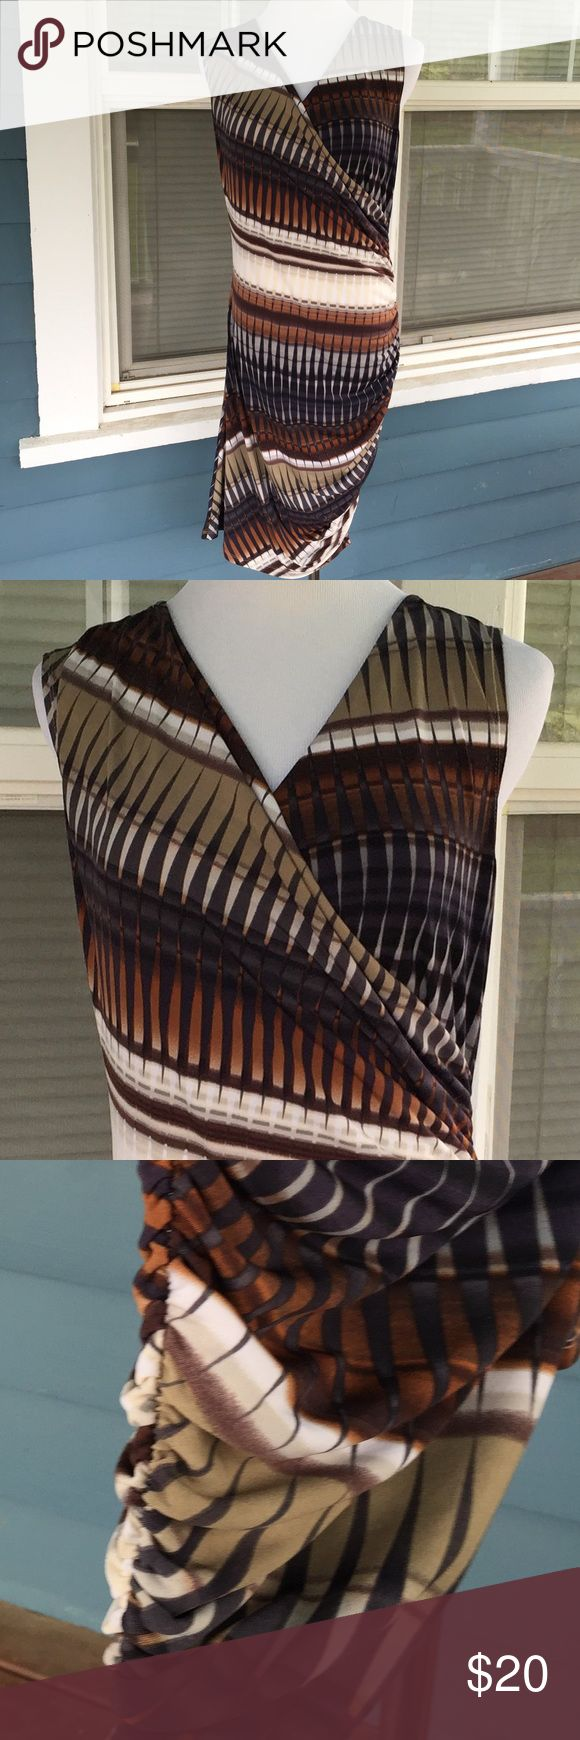 """SOFIA VERGARA Body Con Dress SOFIA VERGARA Body Con Dress.   VNeck.   Drapy front.  Sleeveless.   Gathered left side skirt.  Brown/tan/beige patterned polyester/spandex blend stretchy material.   Pit-to-pit  20"""".   Length 40"""" (shoulder to left side hem),   Excellent condition. Sofia Vergara Dresses"""